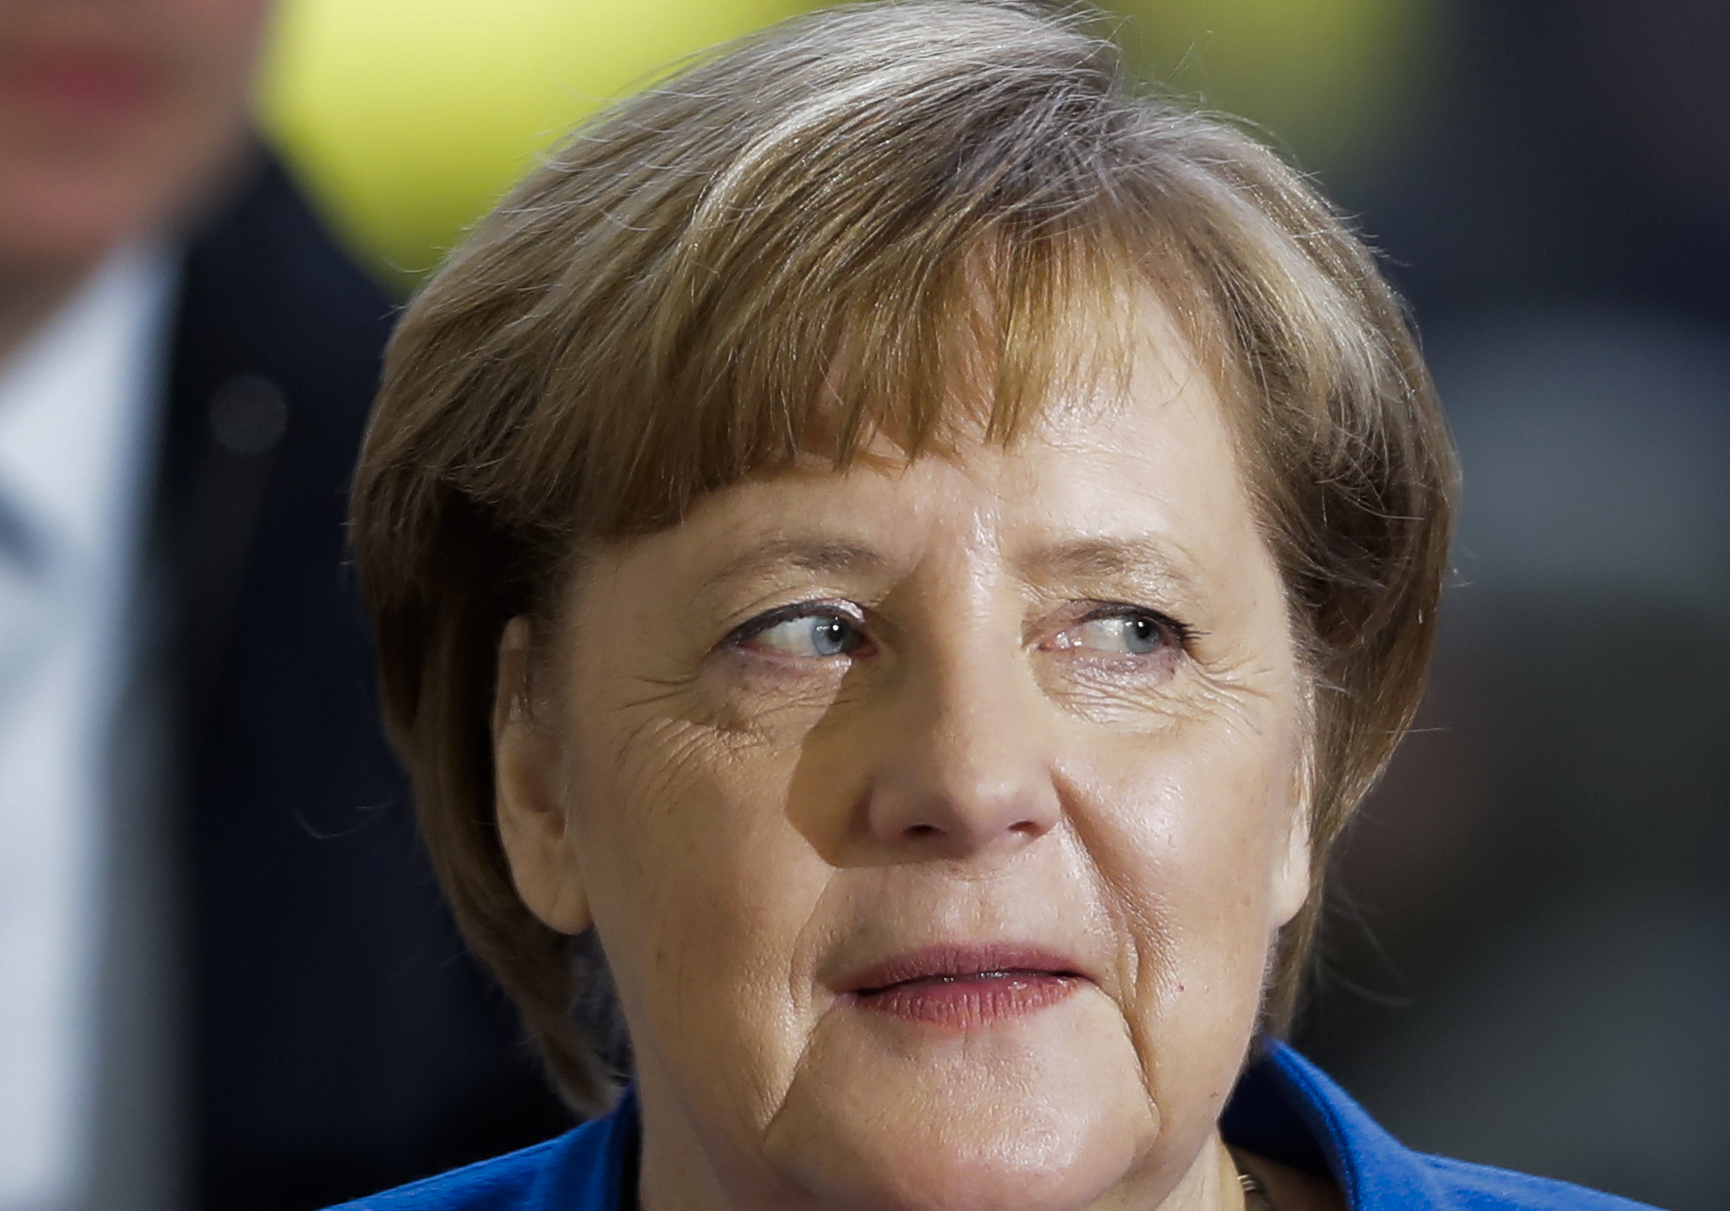 Merkel: 'The people expect us to find solutions'